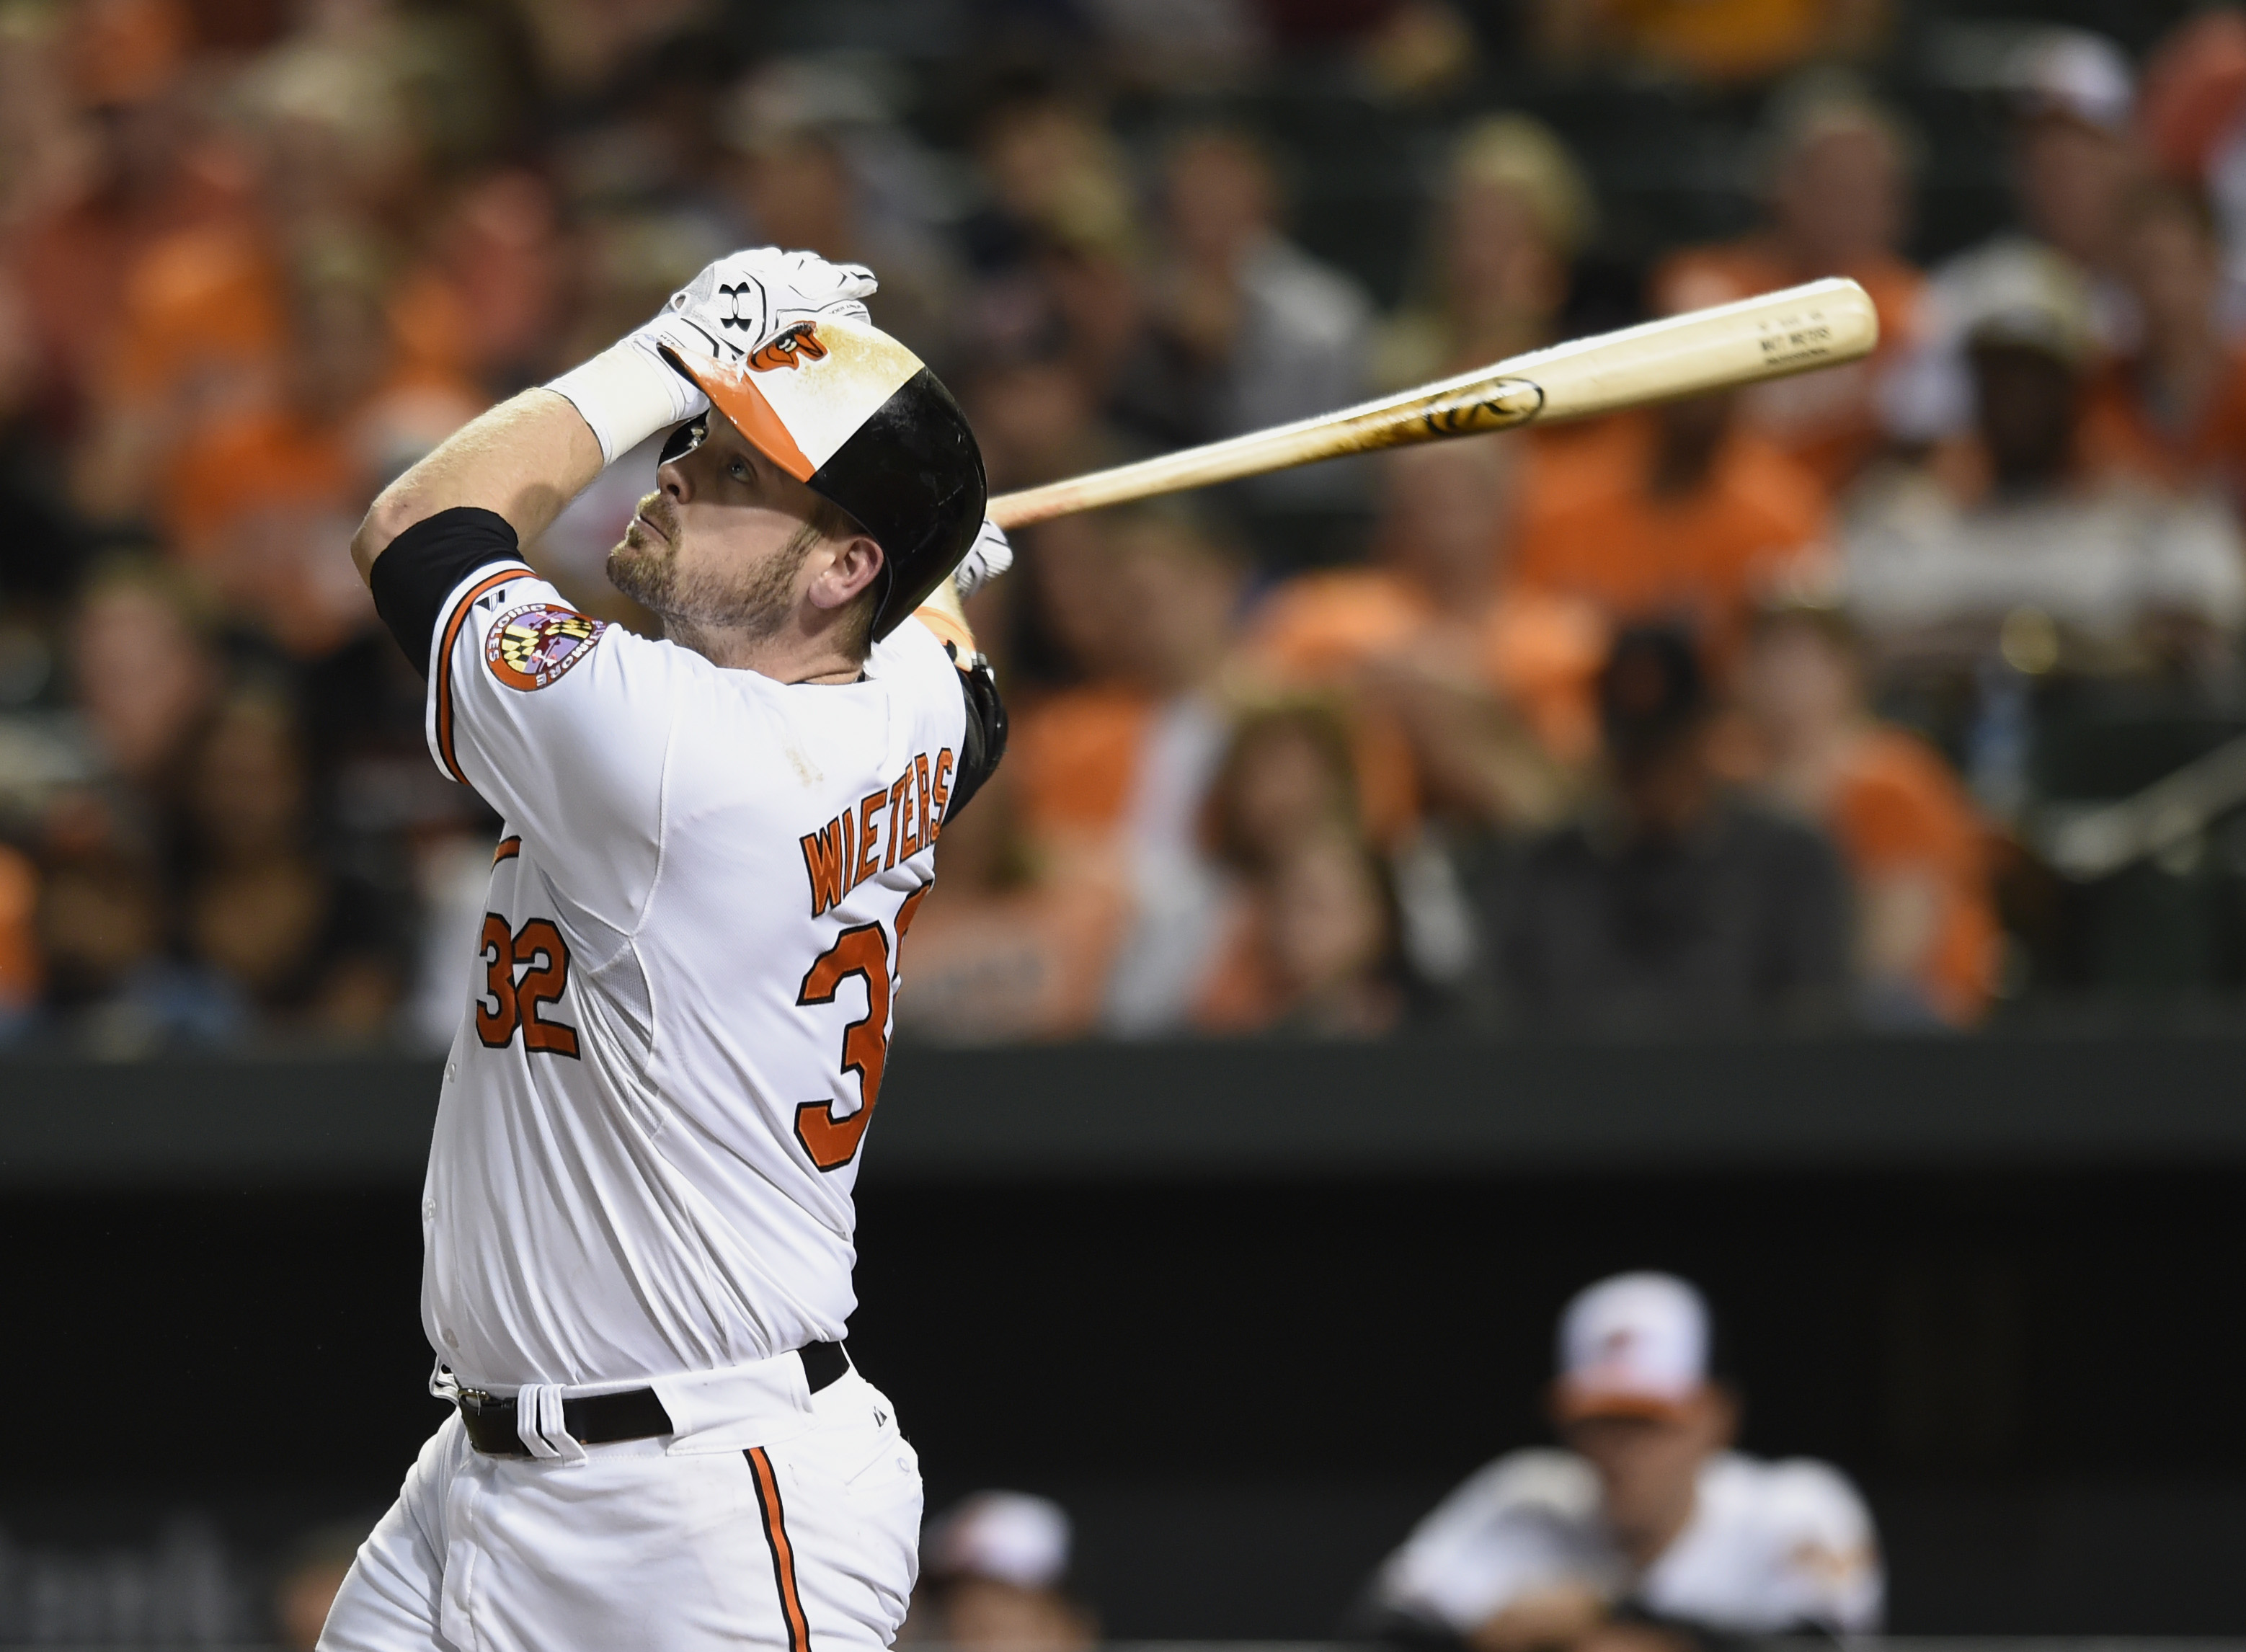 Baltimore Orioles' Matt Wieters follows through on a single against the Toronto Blue Jays in the fourth inning of a baseball game, Monday, Sept. 28, 2015, in Baltimore. (AP Photo/Gail Burton)